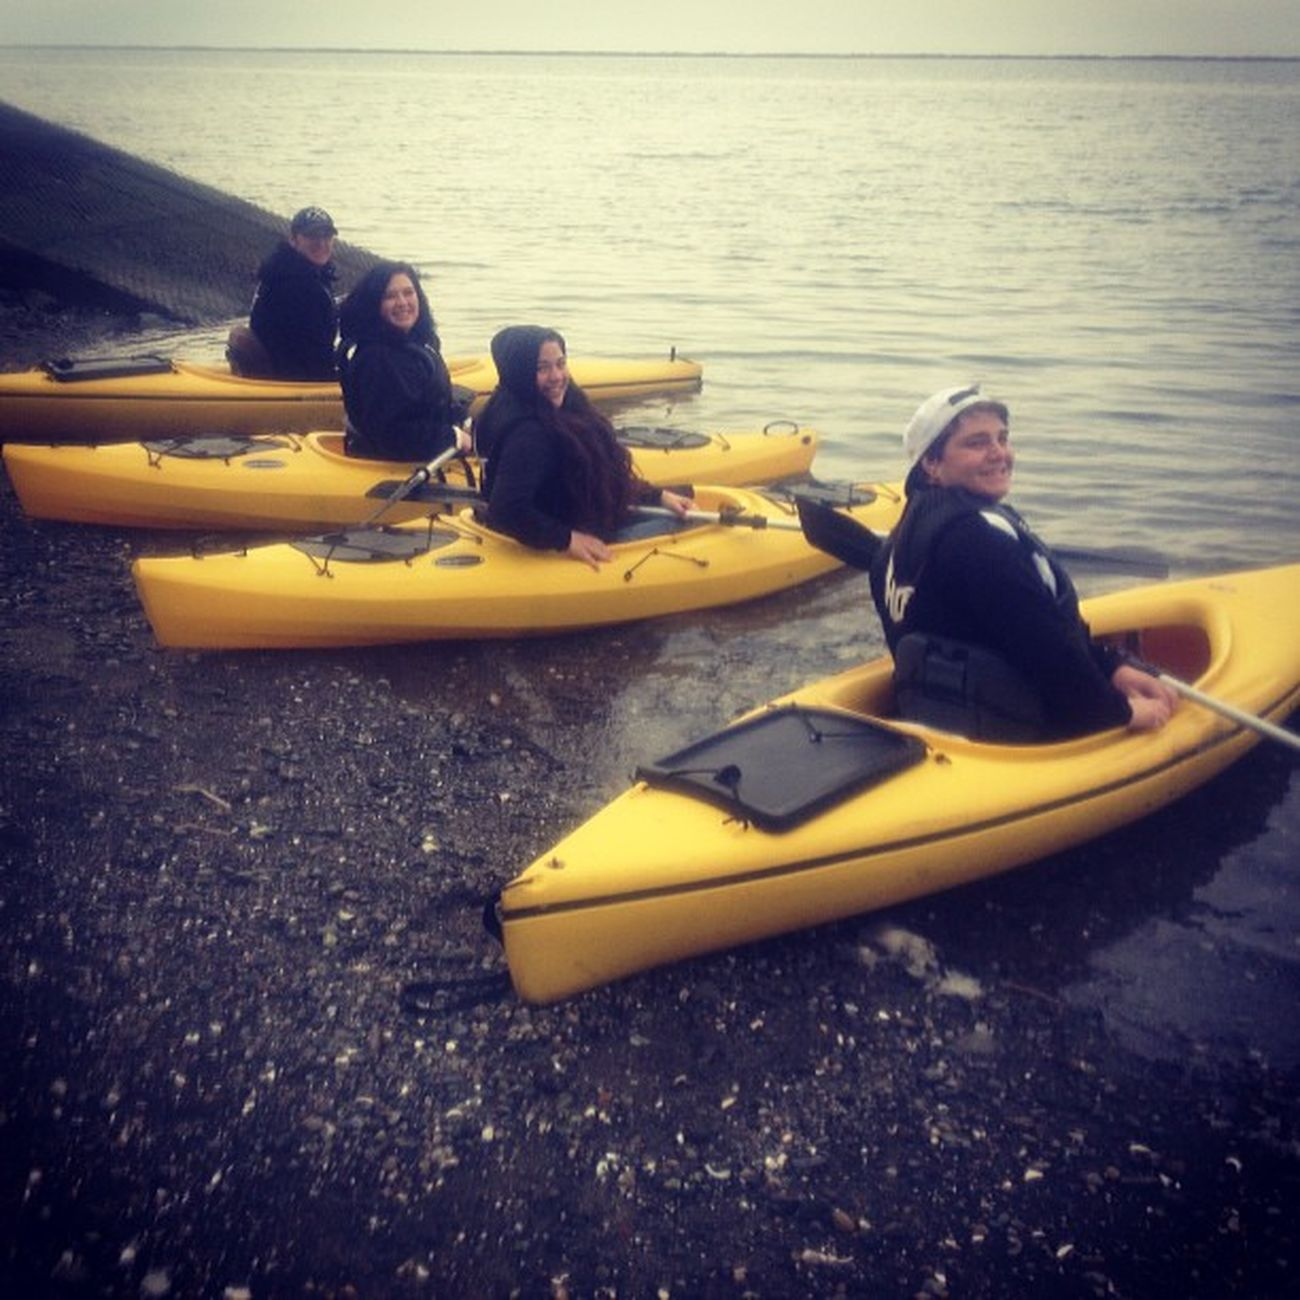 Kayaking Ouradventures Myfriends LoveThem  gooddayoff pnw